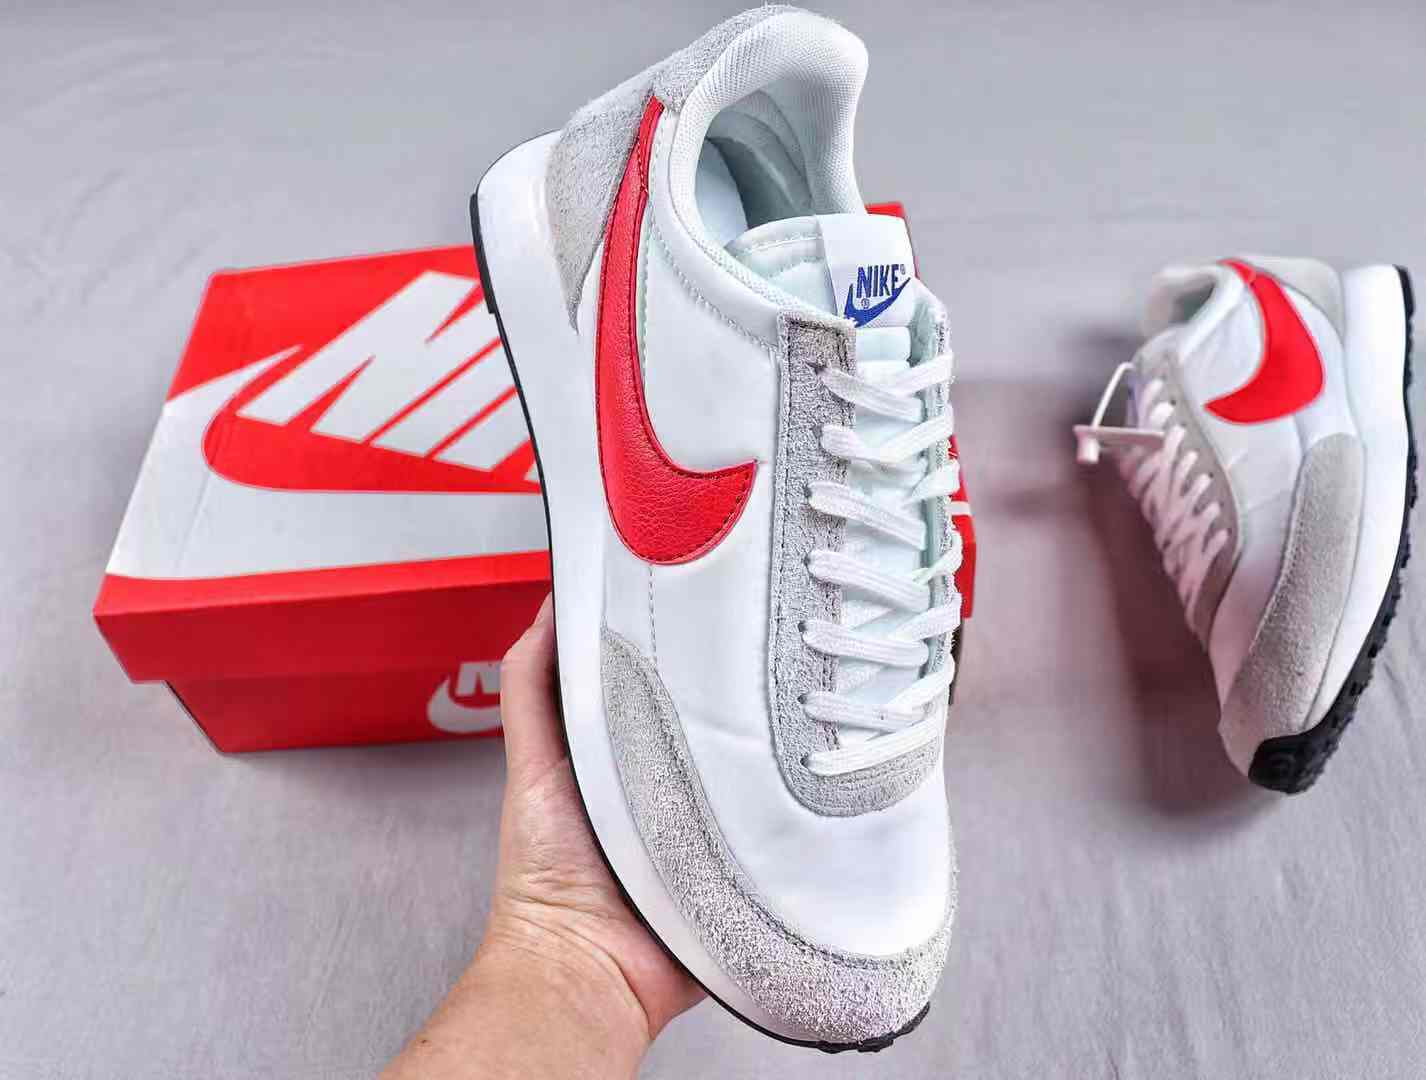 Buy Nike Daybreak SP White University Red BV7725-100 Online